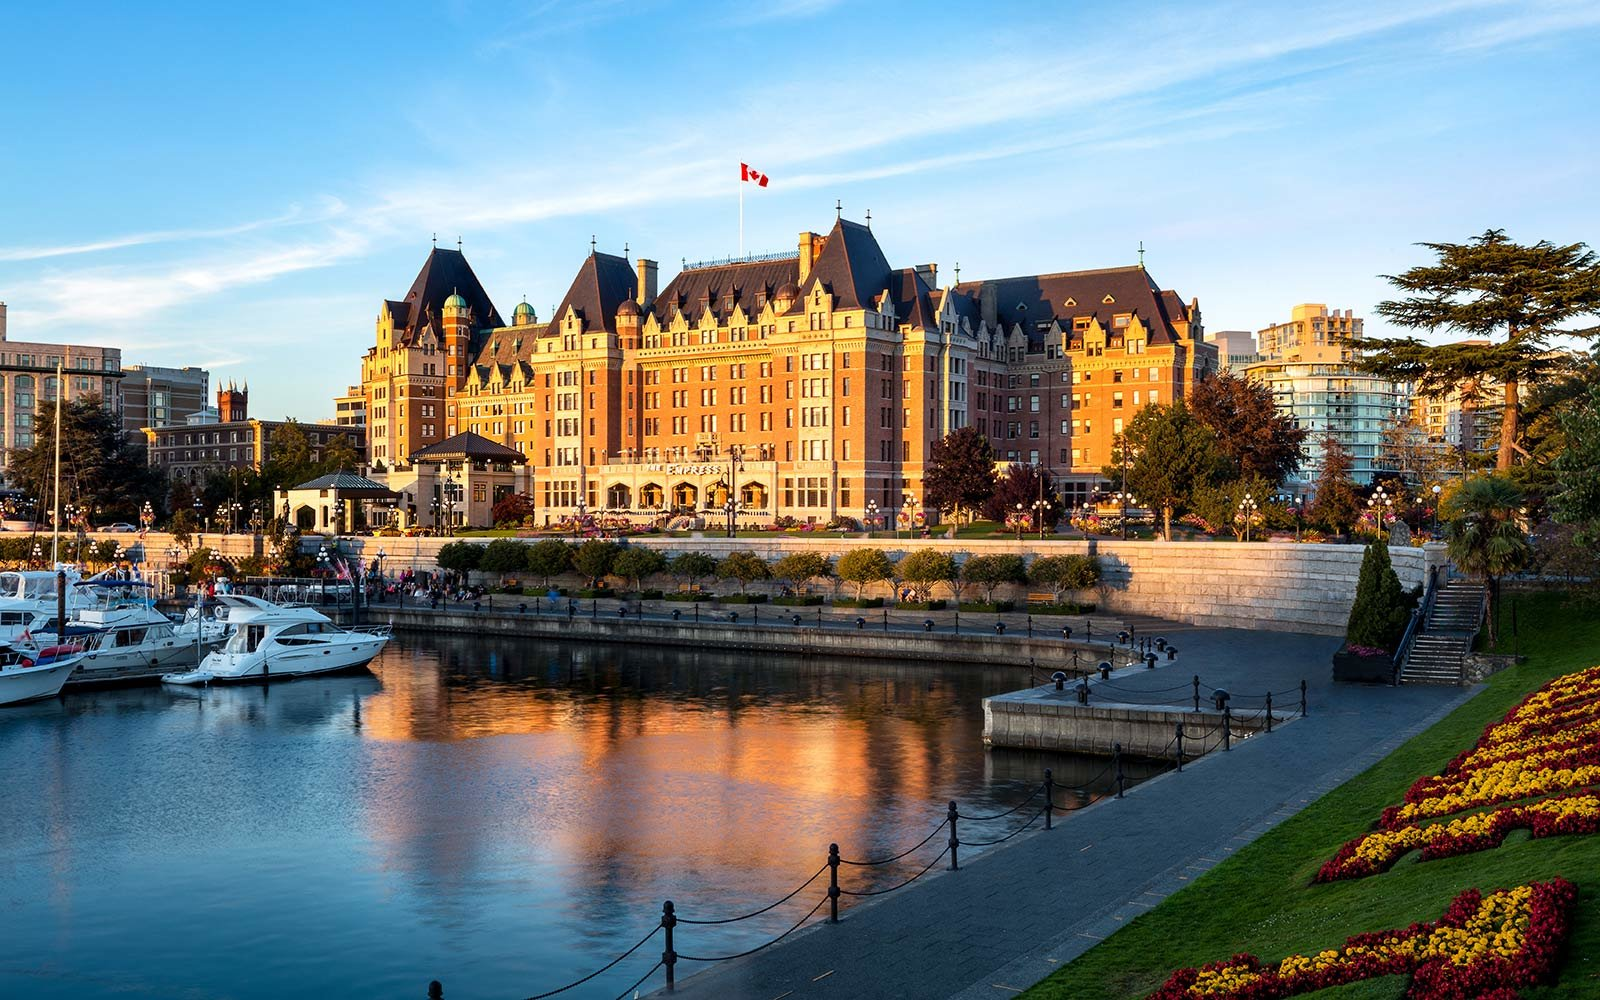 Exterior view of the Fairmont Empress hotel